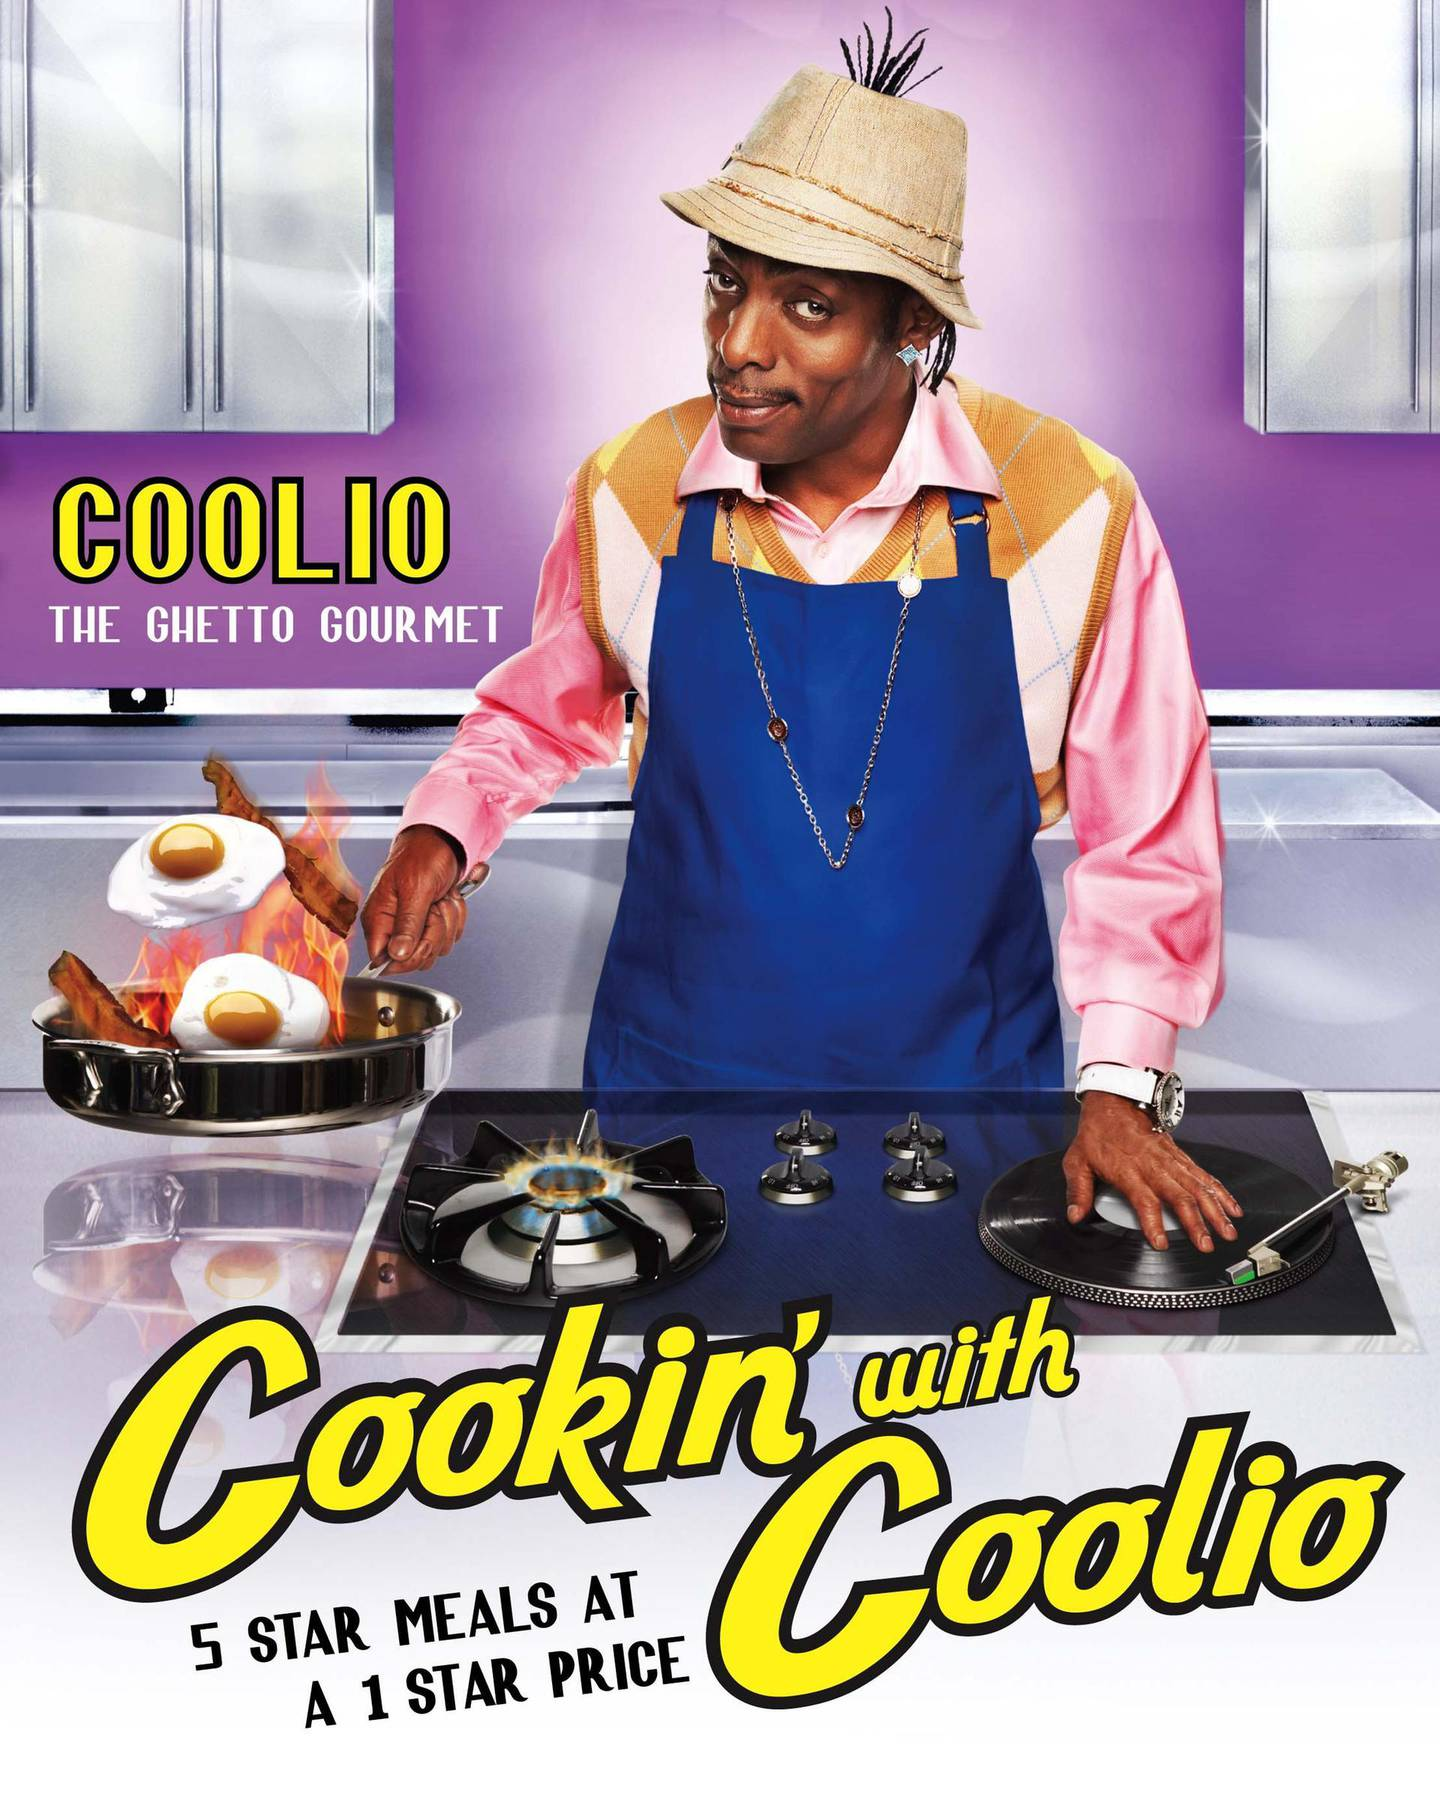 Cookin' with Coolio: 5 Star Meals at a 1 Star Priceby Coolio published by Atria Books. Courtesy Simon & Schuster